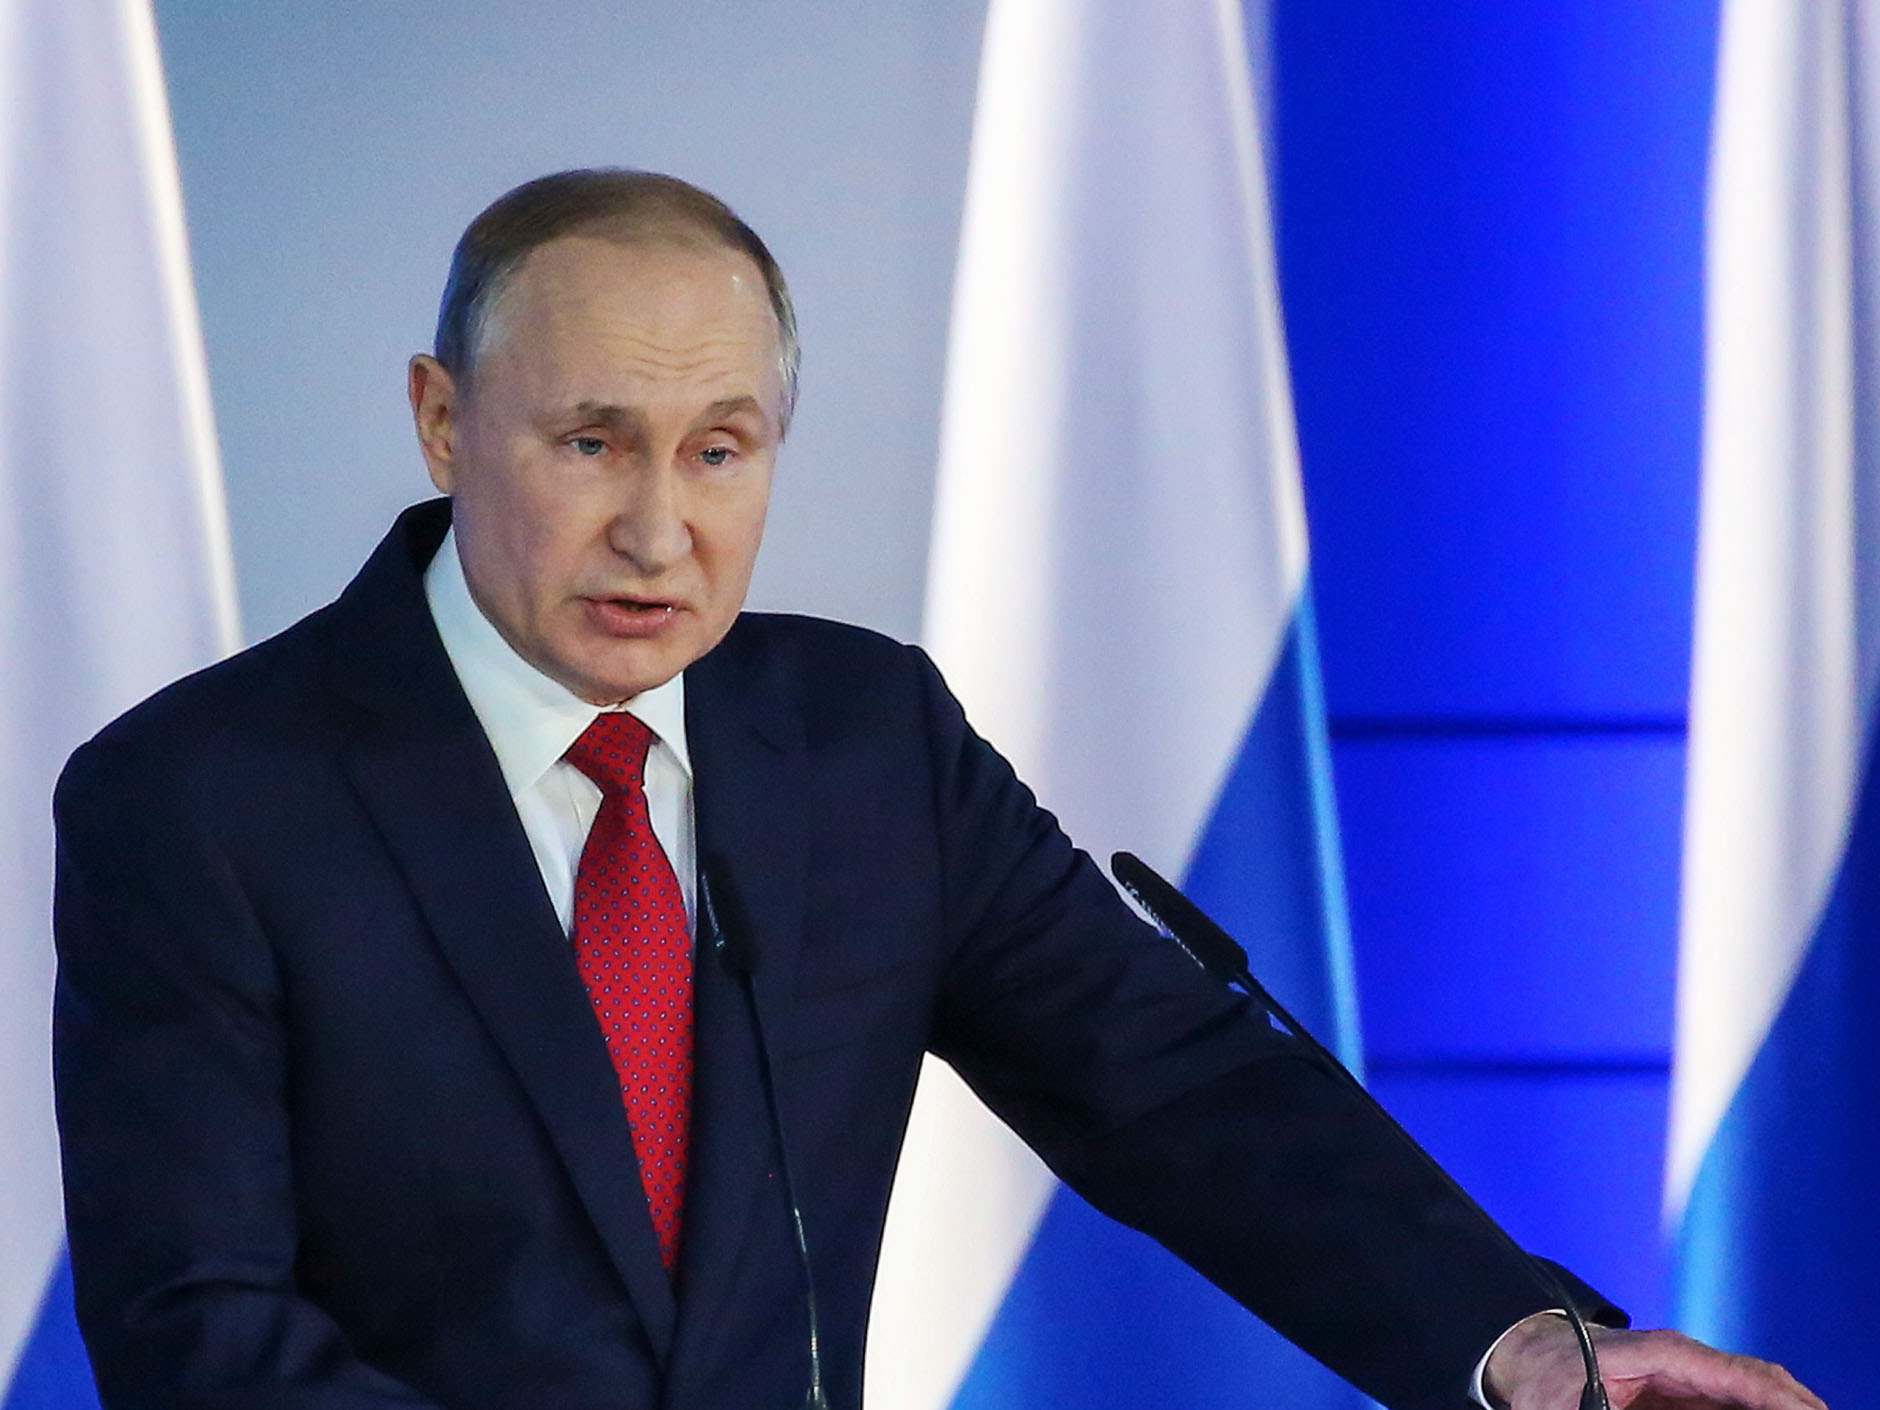 Putin Approval Rating Hits Record Low As Virus Crisis Deepens Bloomberg